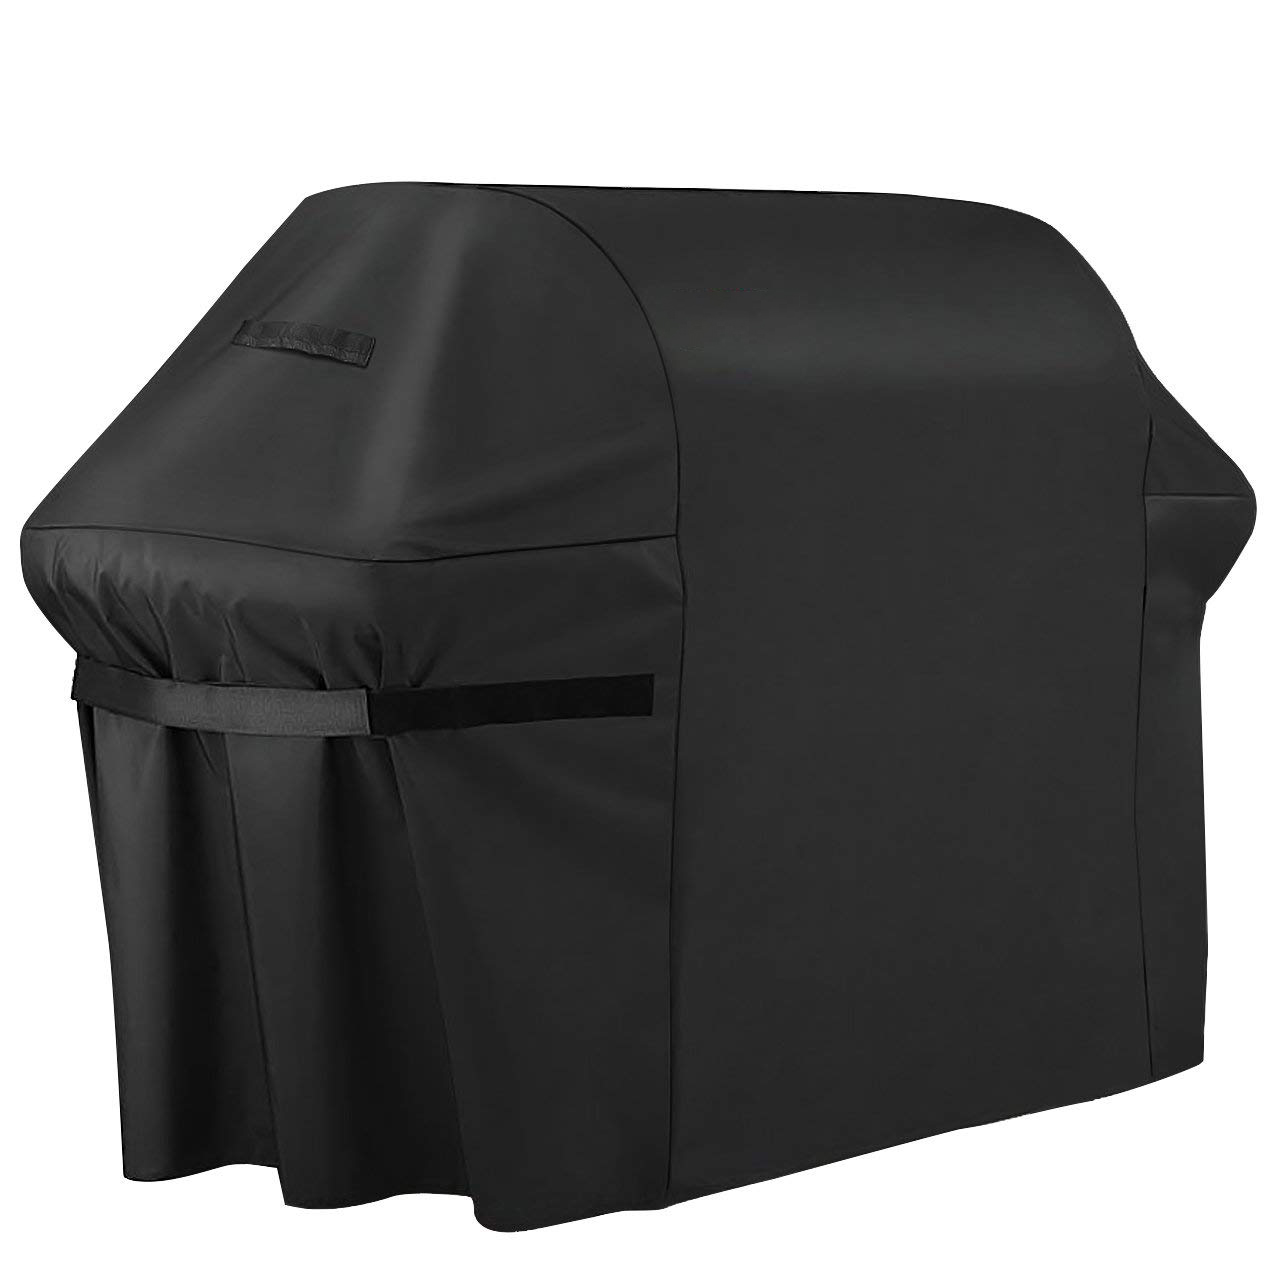 Waterproof BBQ Barbecue Cover Large Easily Cleaned BBQ Grill Cover